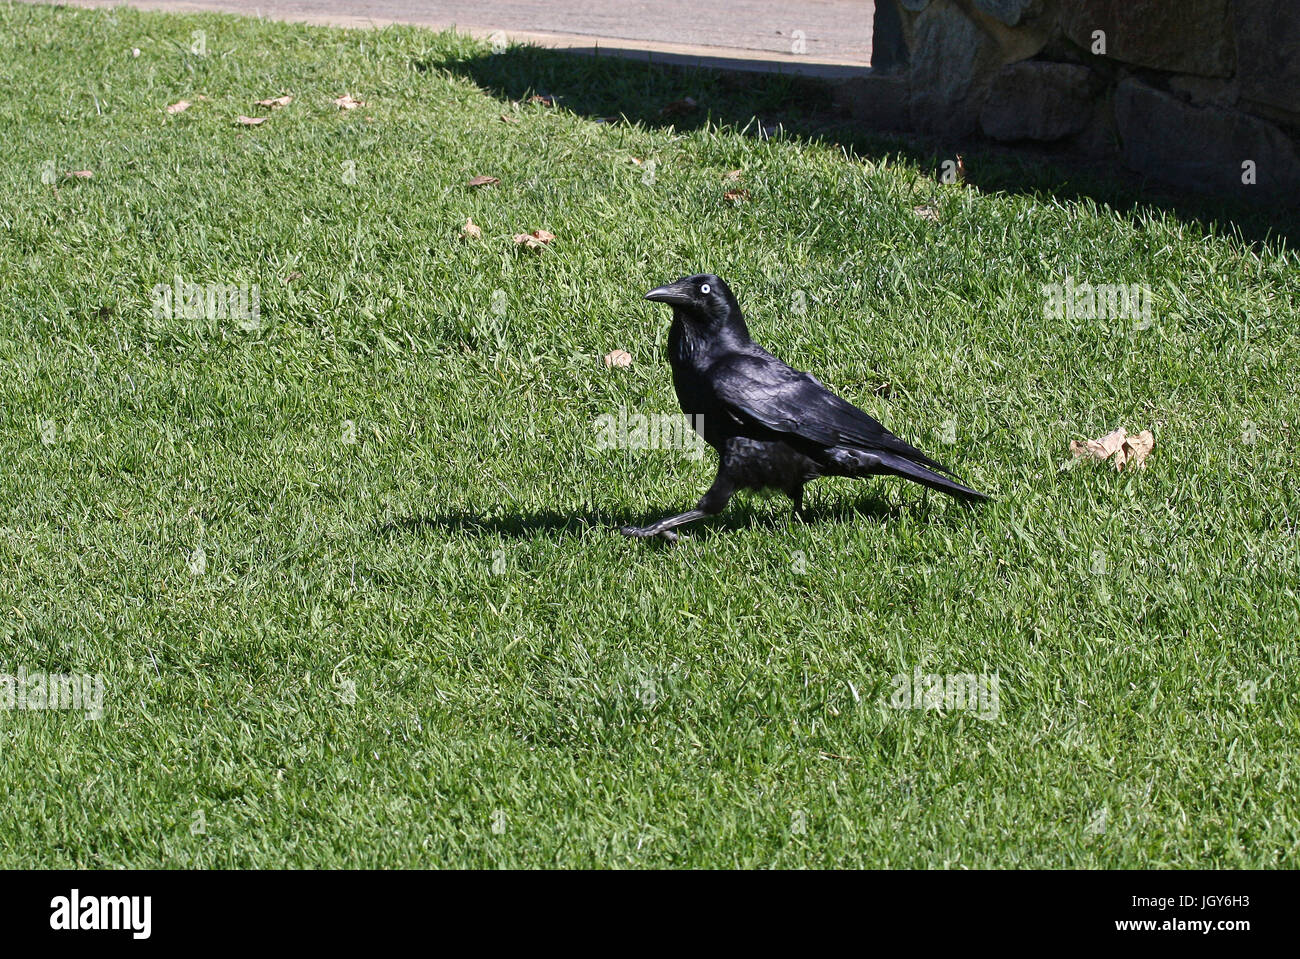 An Australian Raven (Corvus coronoides) walking on the grass in a park in Perth , Western Australia - Stock Image